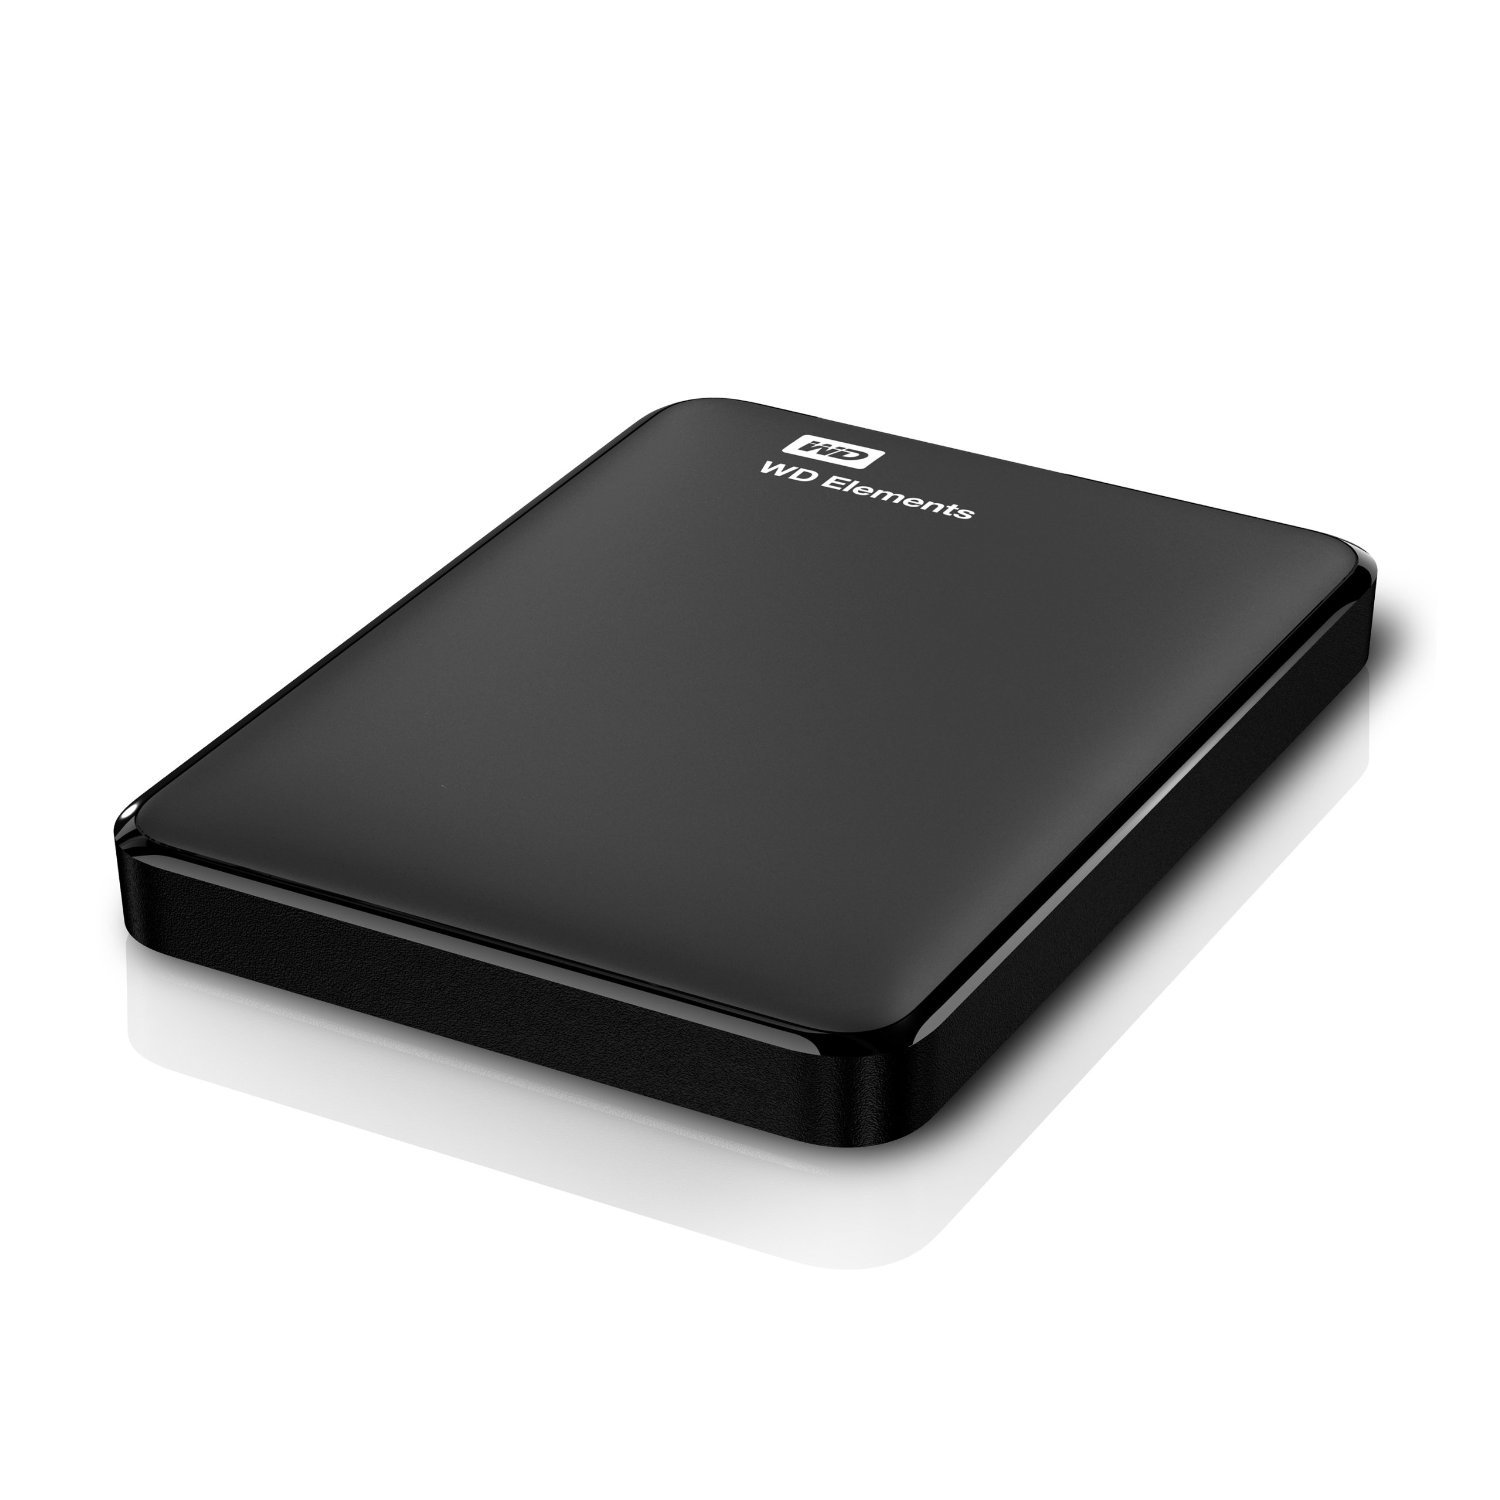 Upto 50% Off On Data Storage By Amazon | WD Elements 1TB USB 3.0 Portable External Hard Drive (Black) @ Rs.4,149